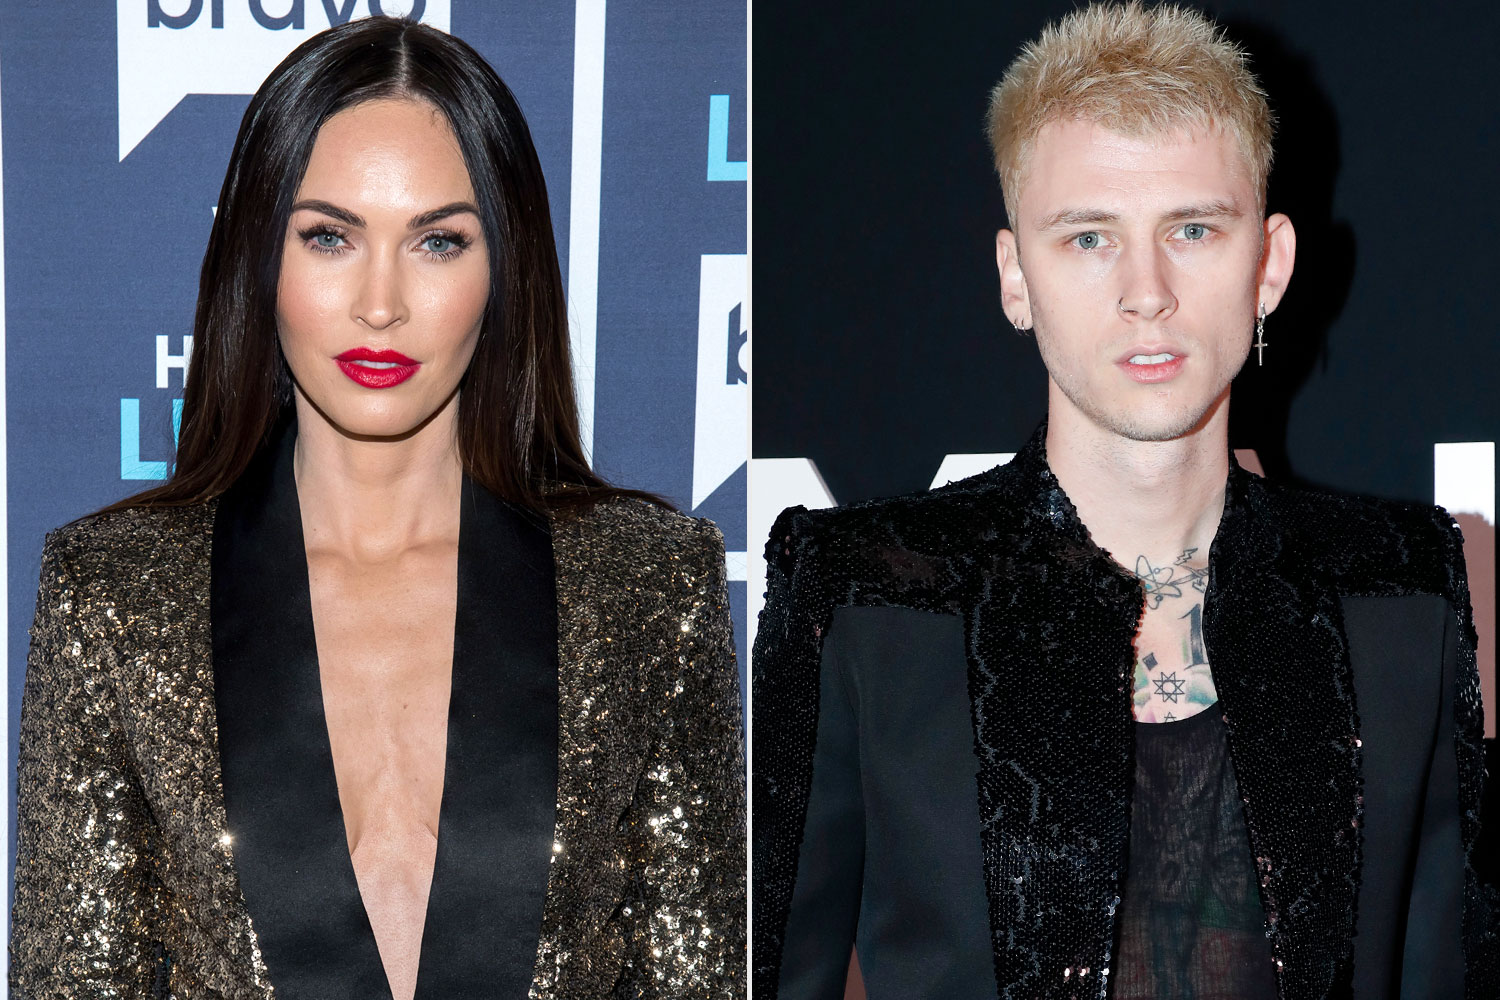 Machine Gun Kelly and Megan Fox